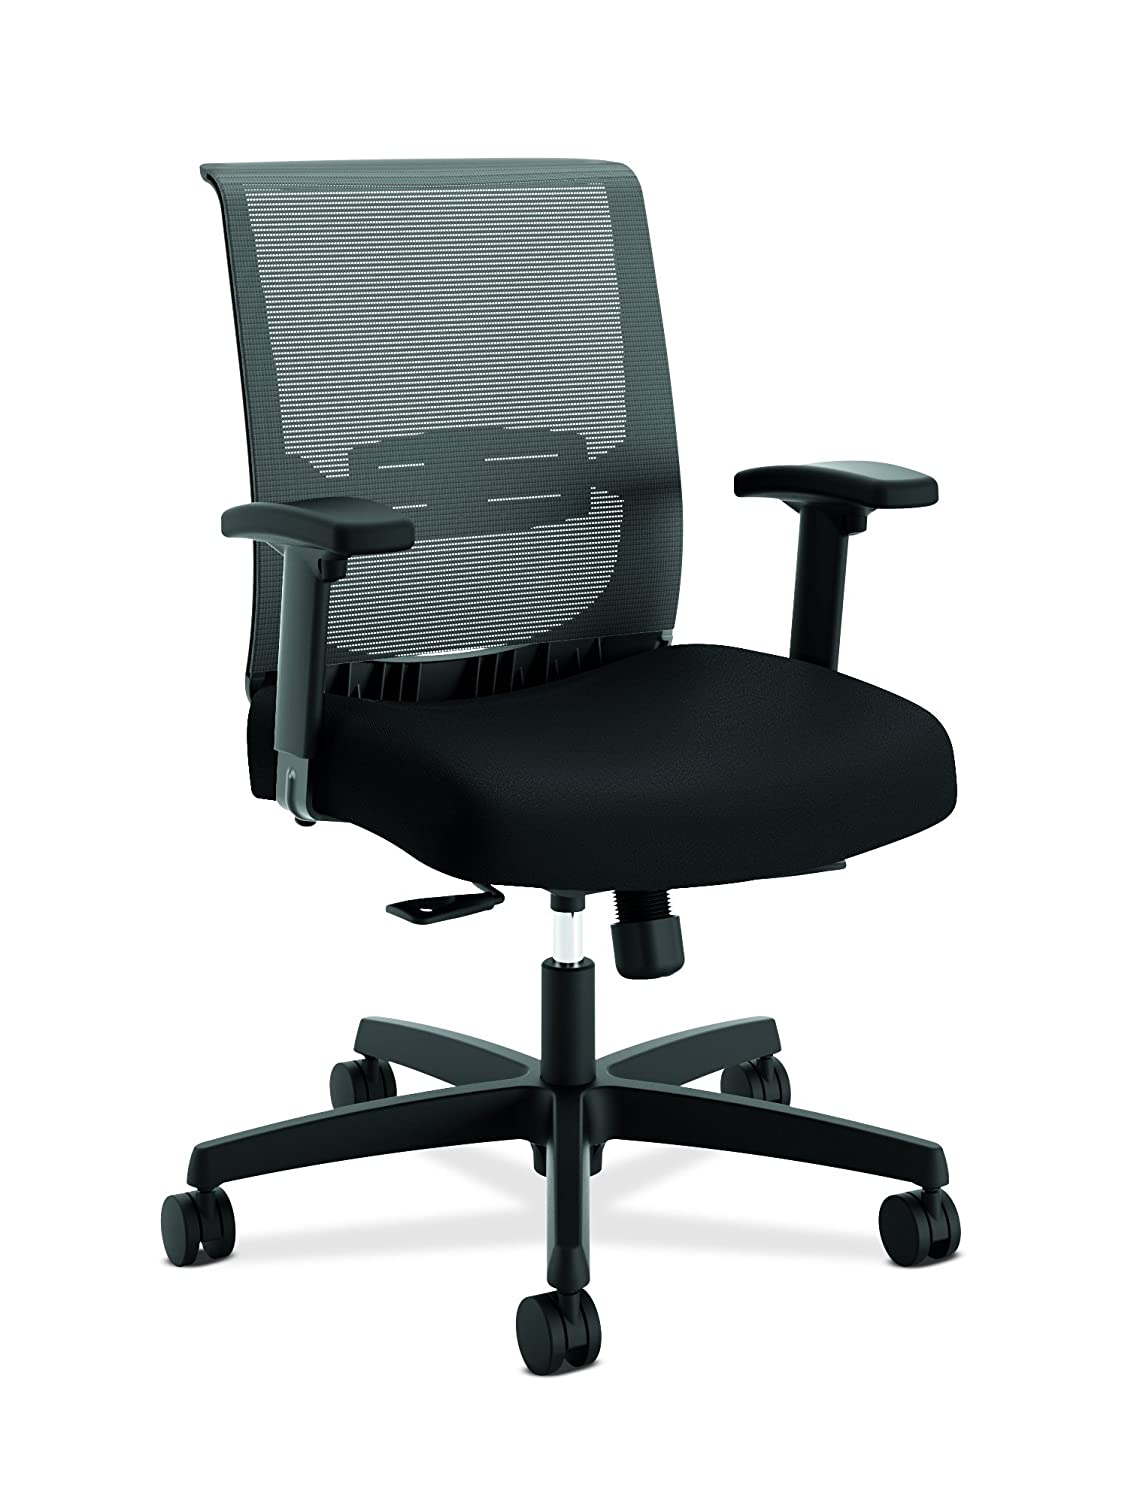 Amazon.com: HON HONCMY1AACCF10 Convergence Task Chair, Synchro-Tilt with Seat Slide, Black Fabric: Kitchen & Dining